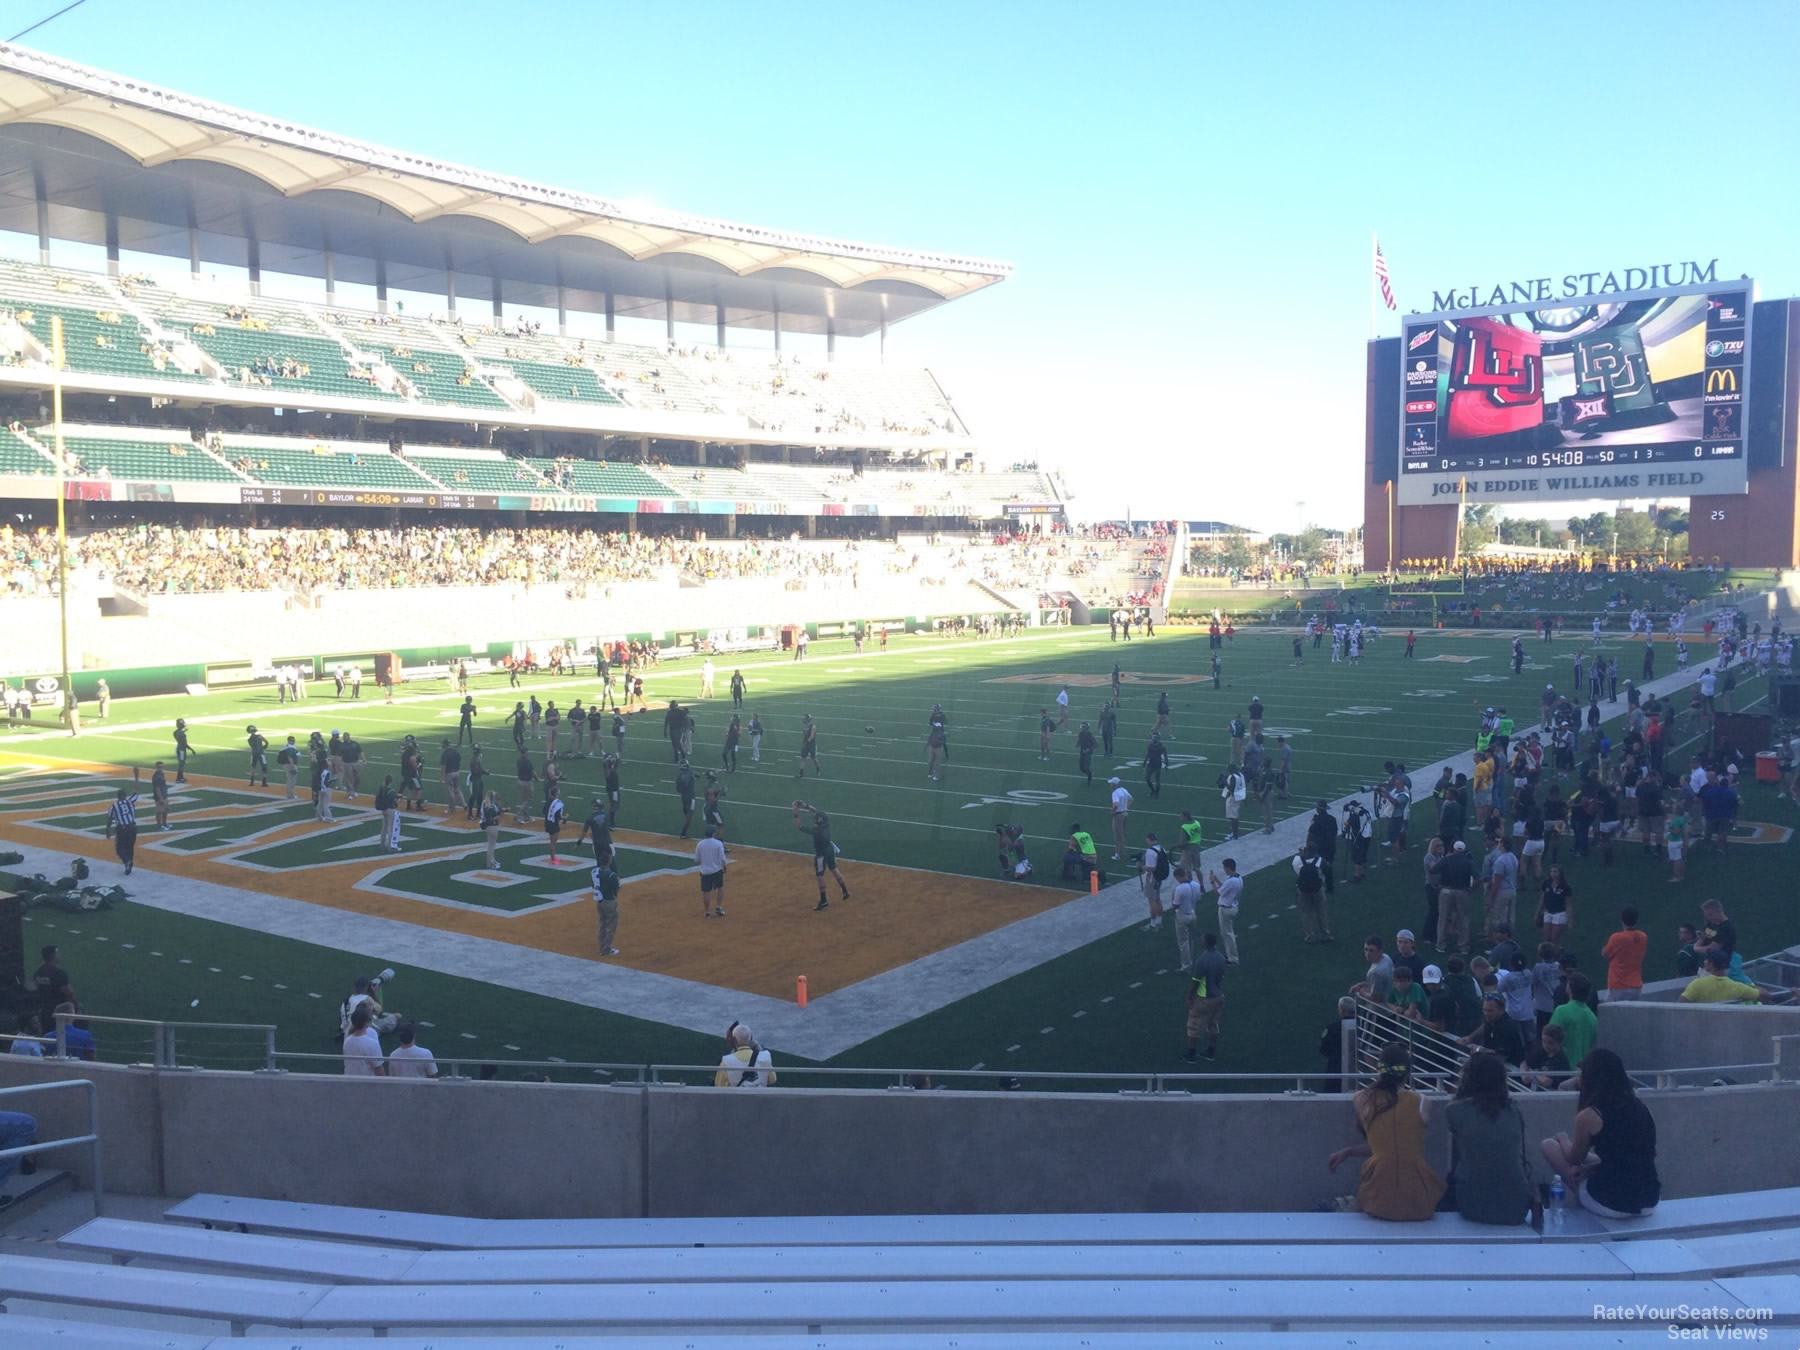 Seat View for McLane Stadium Section 112, Row 20